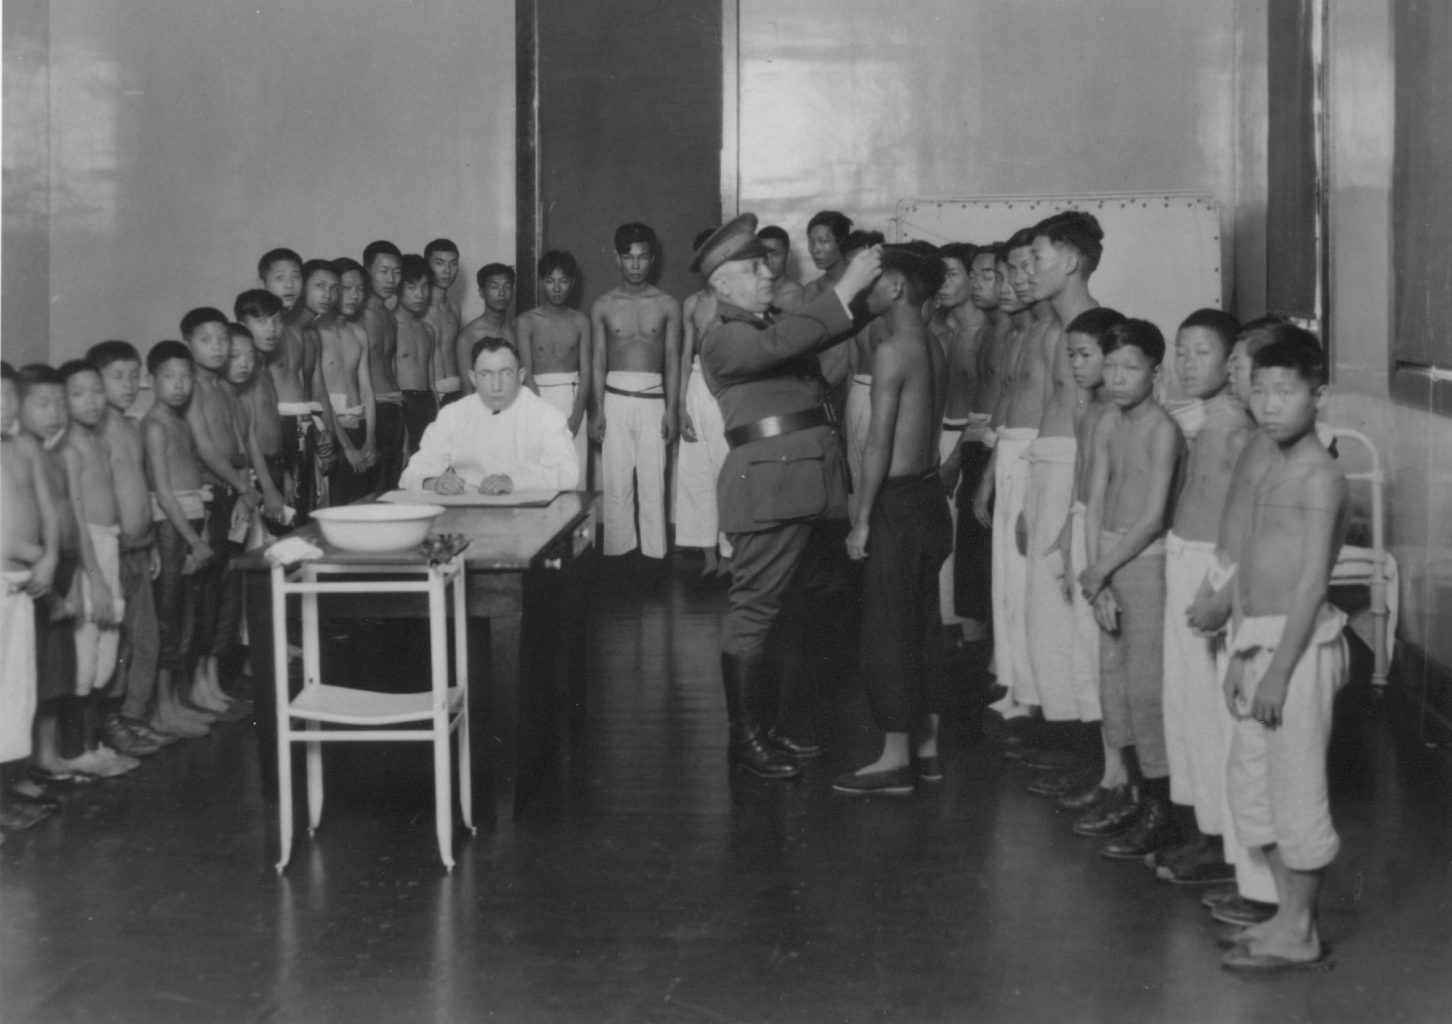 A group of Asian children and teenagers standing against the wall in a room with a white doctor and uniformed official, who is inspecting the head of one of the boys.